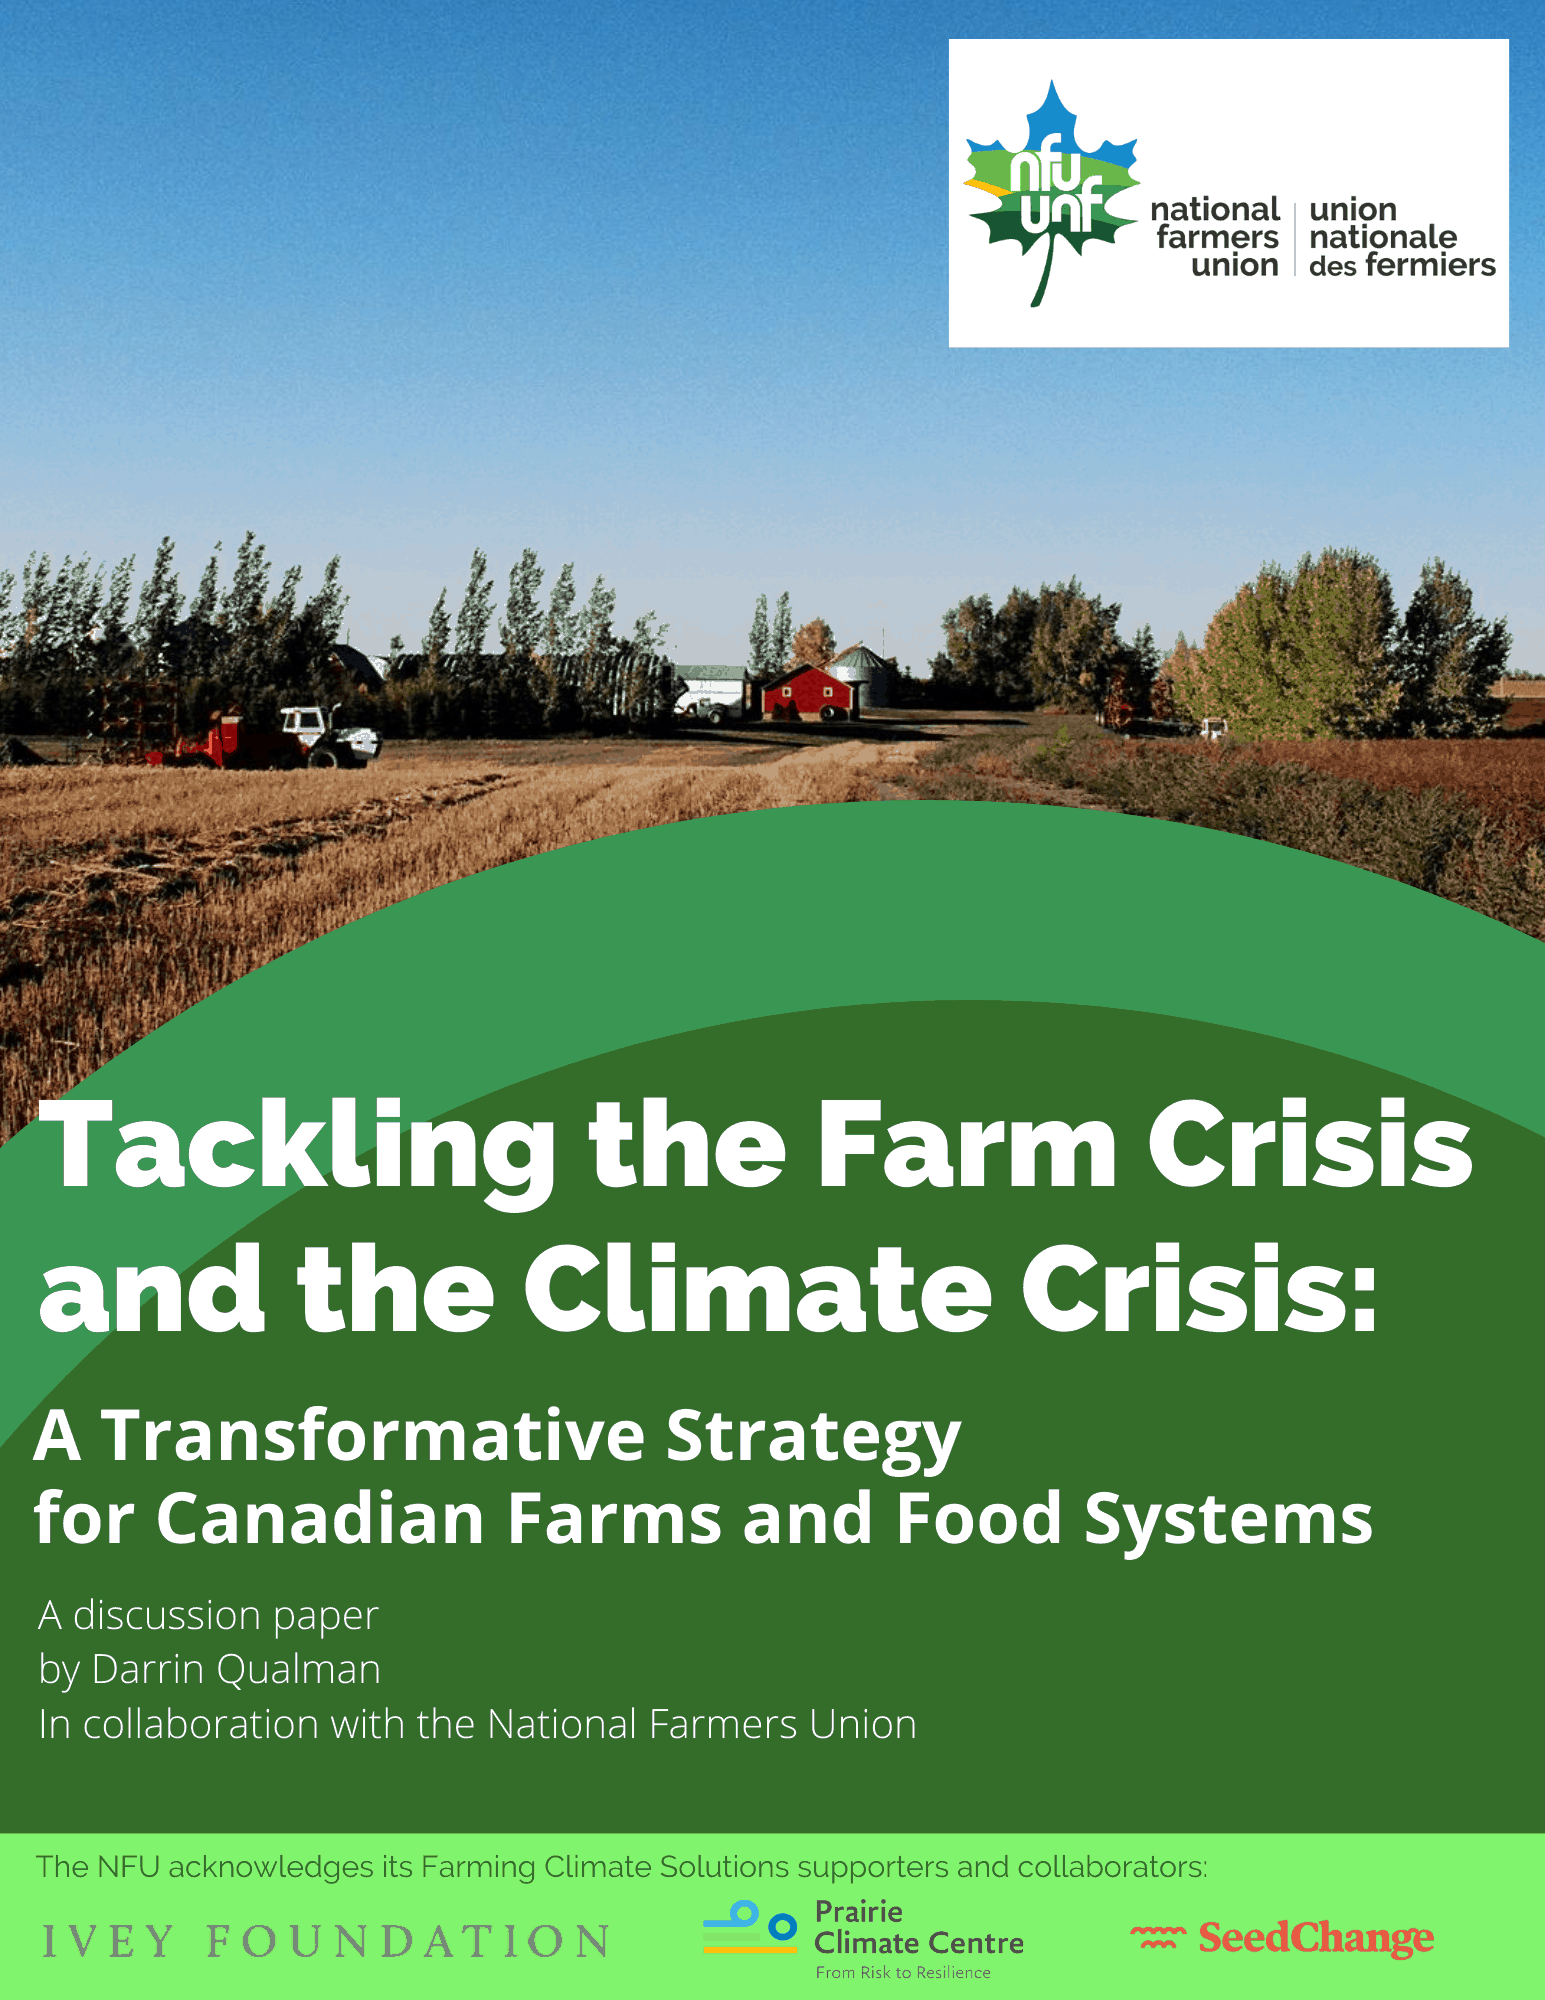 Tackling the Farm Crisis and the Climate Crisis